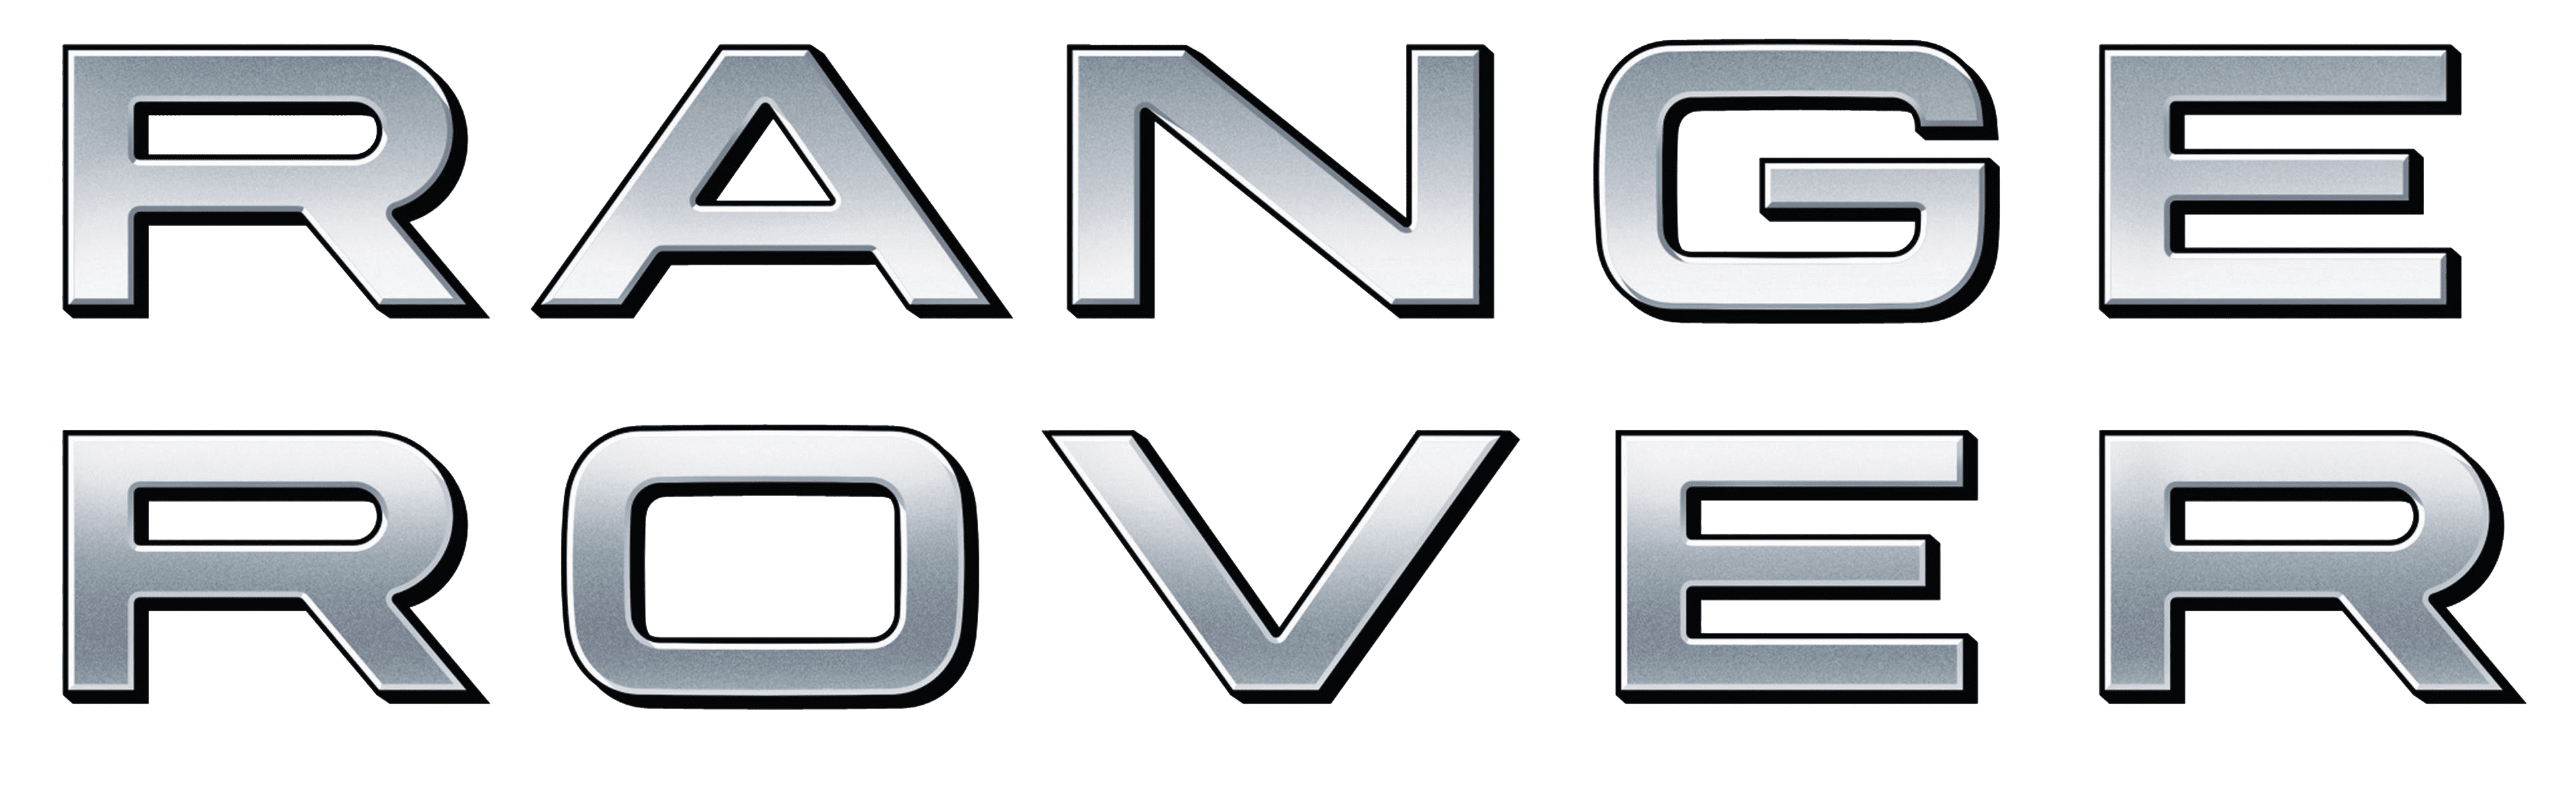 Land-Rover-Logo-Transparent-PNG